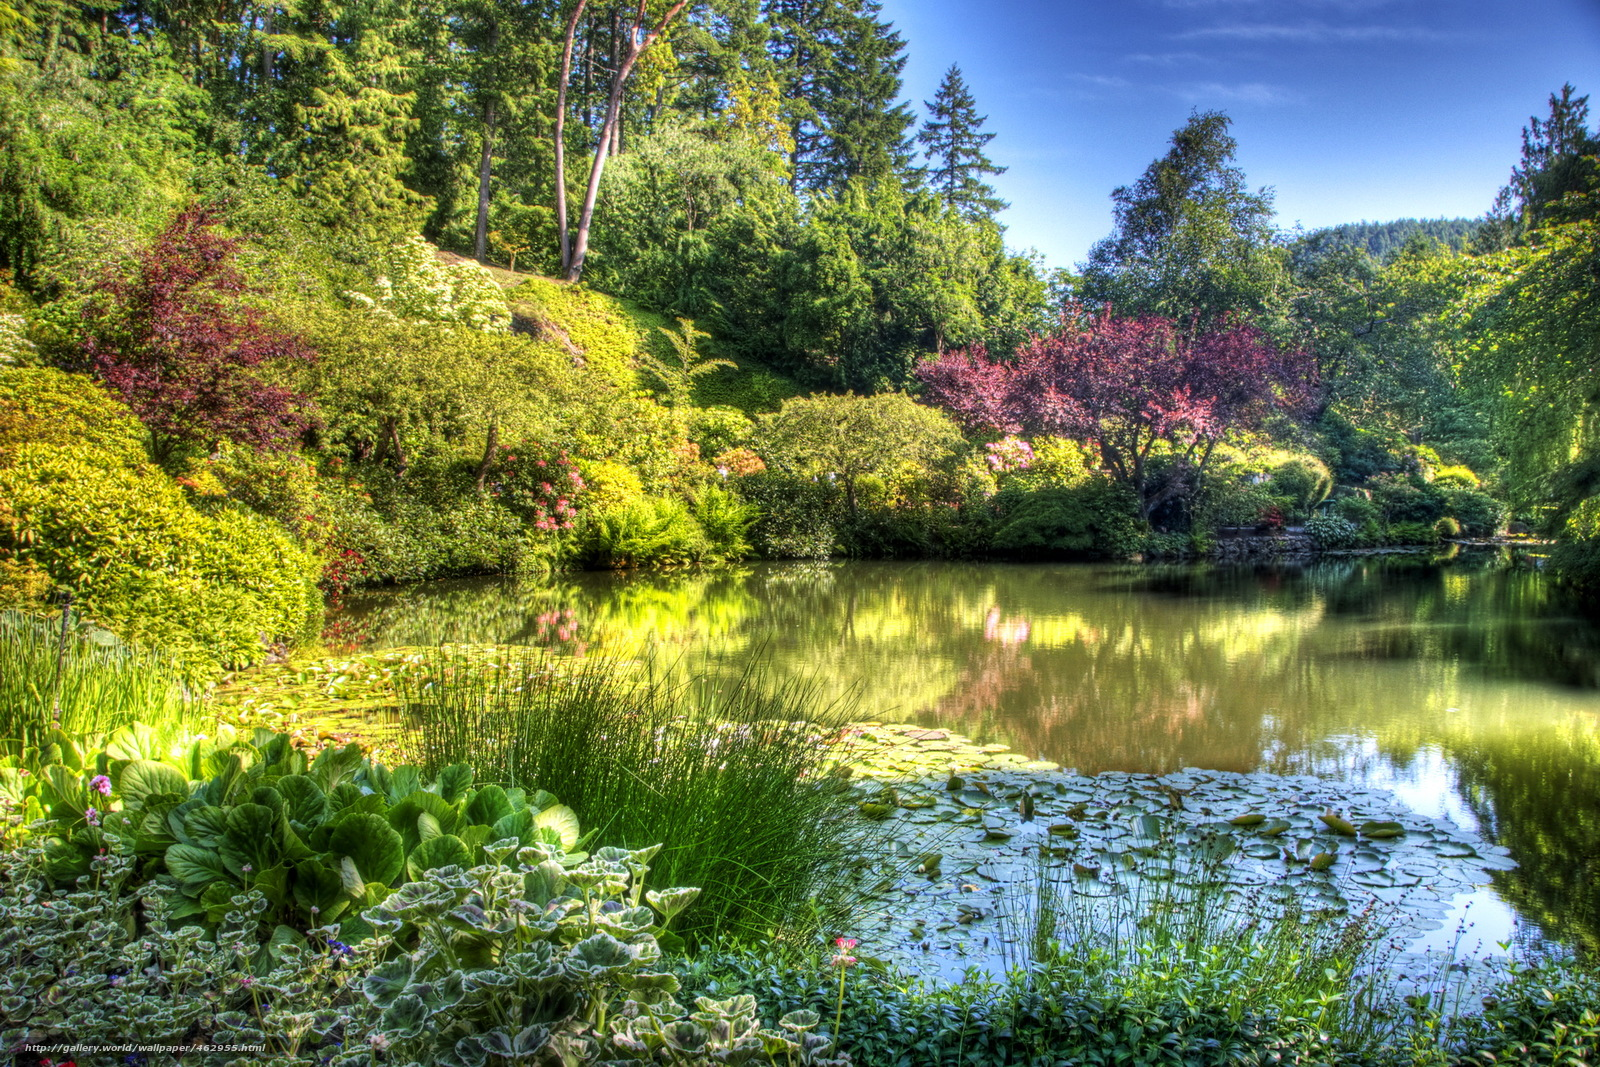 Download wallpaper Garden butchart gardens victoria Canada 1600x1067